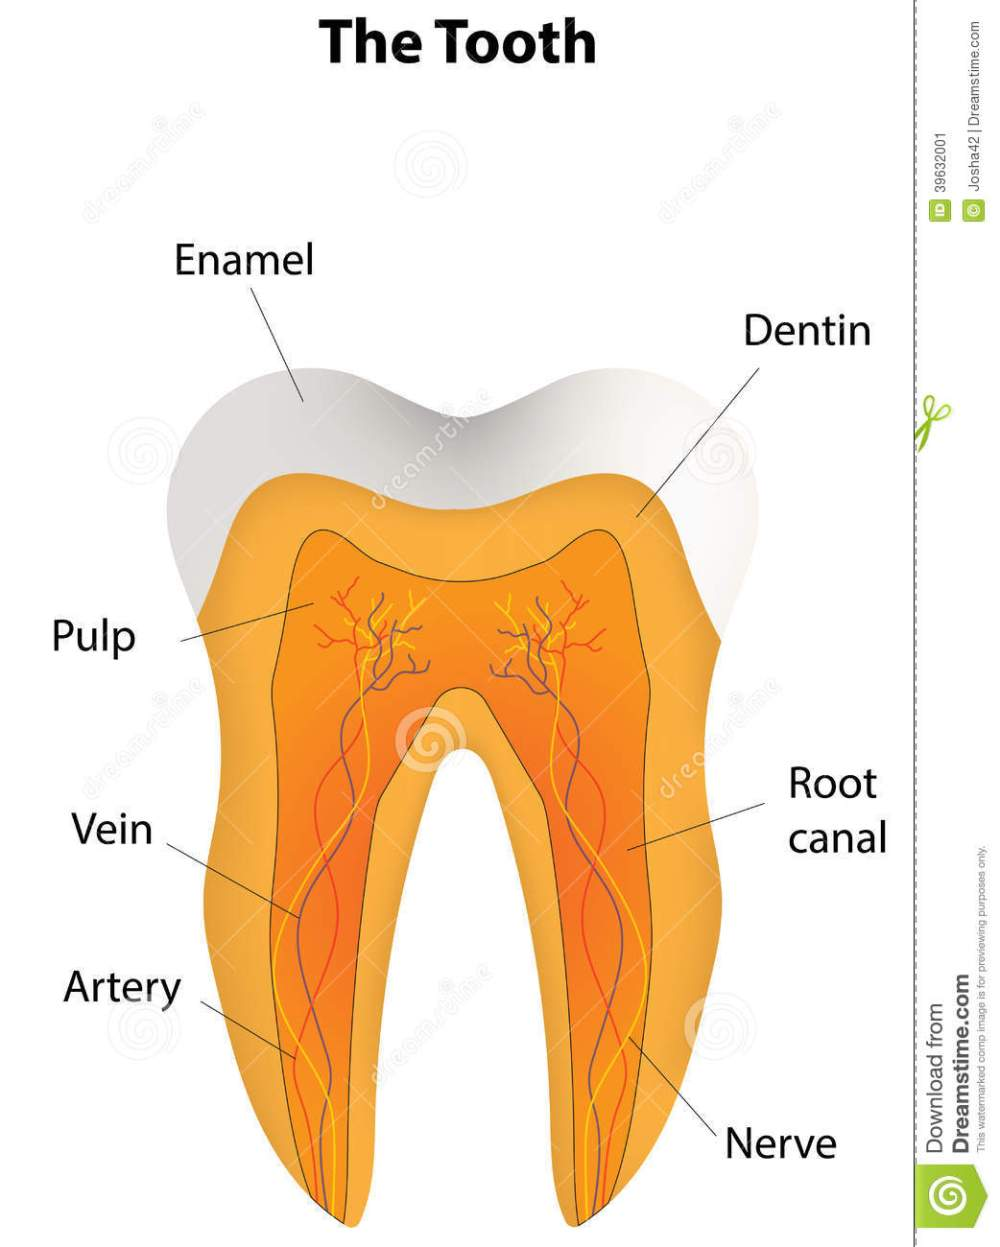 medium resolution of anatomical tooth labeled diagram stock vector illustration of a very lovely presented tooth with 3d shading